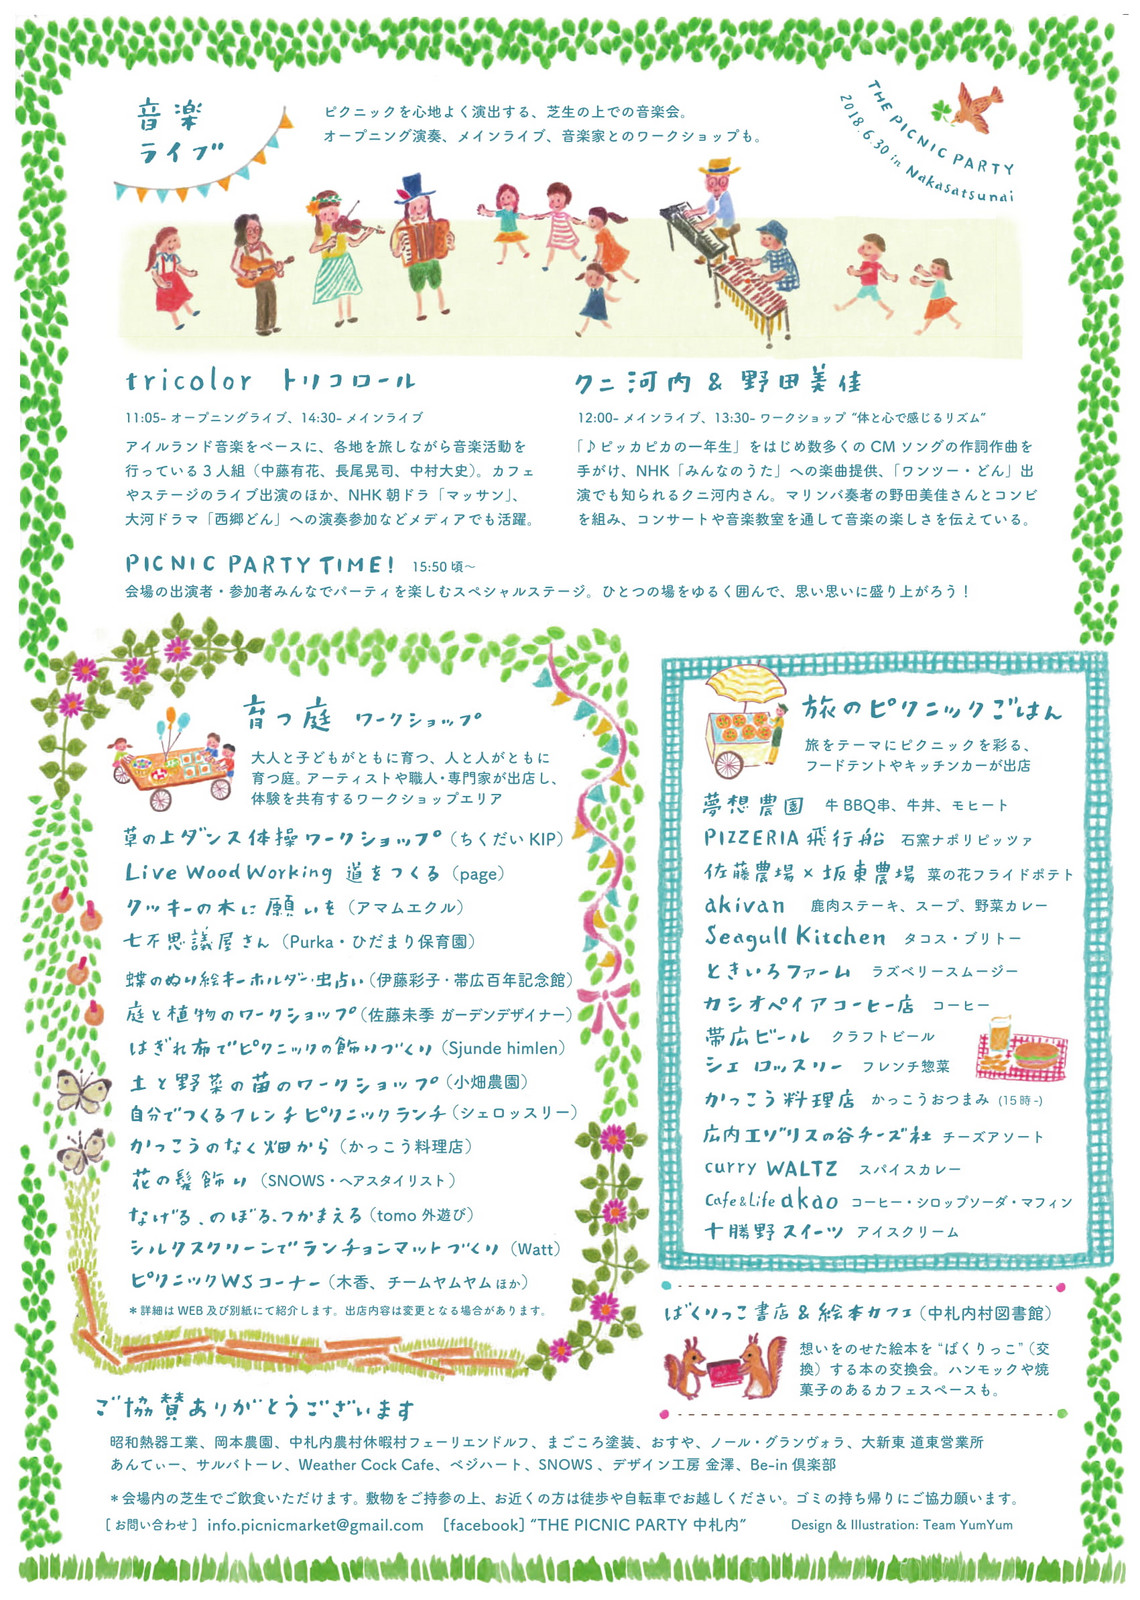 Flyer_thepicnicparty_2018_part21_3